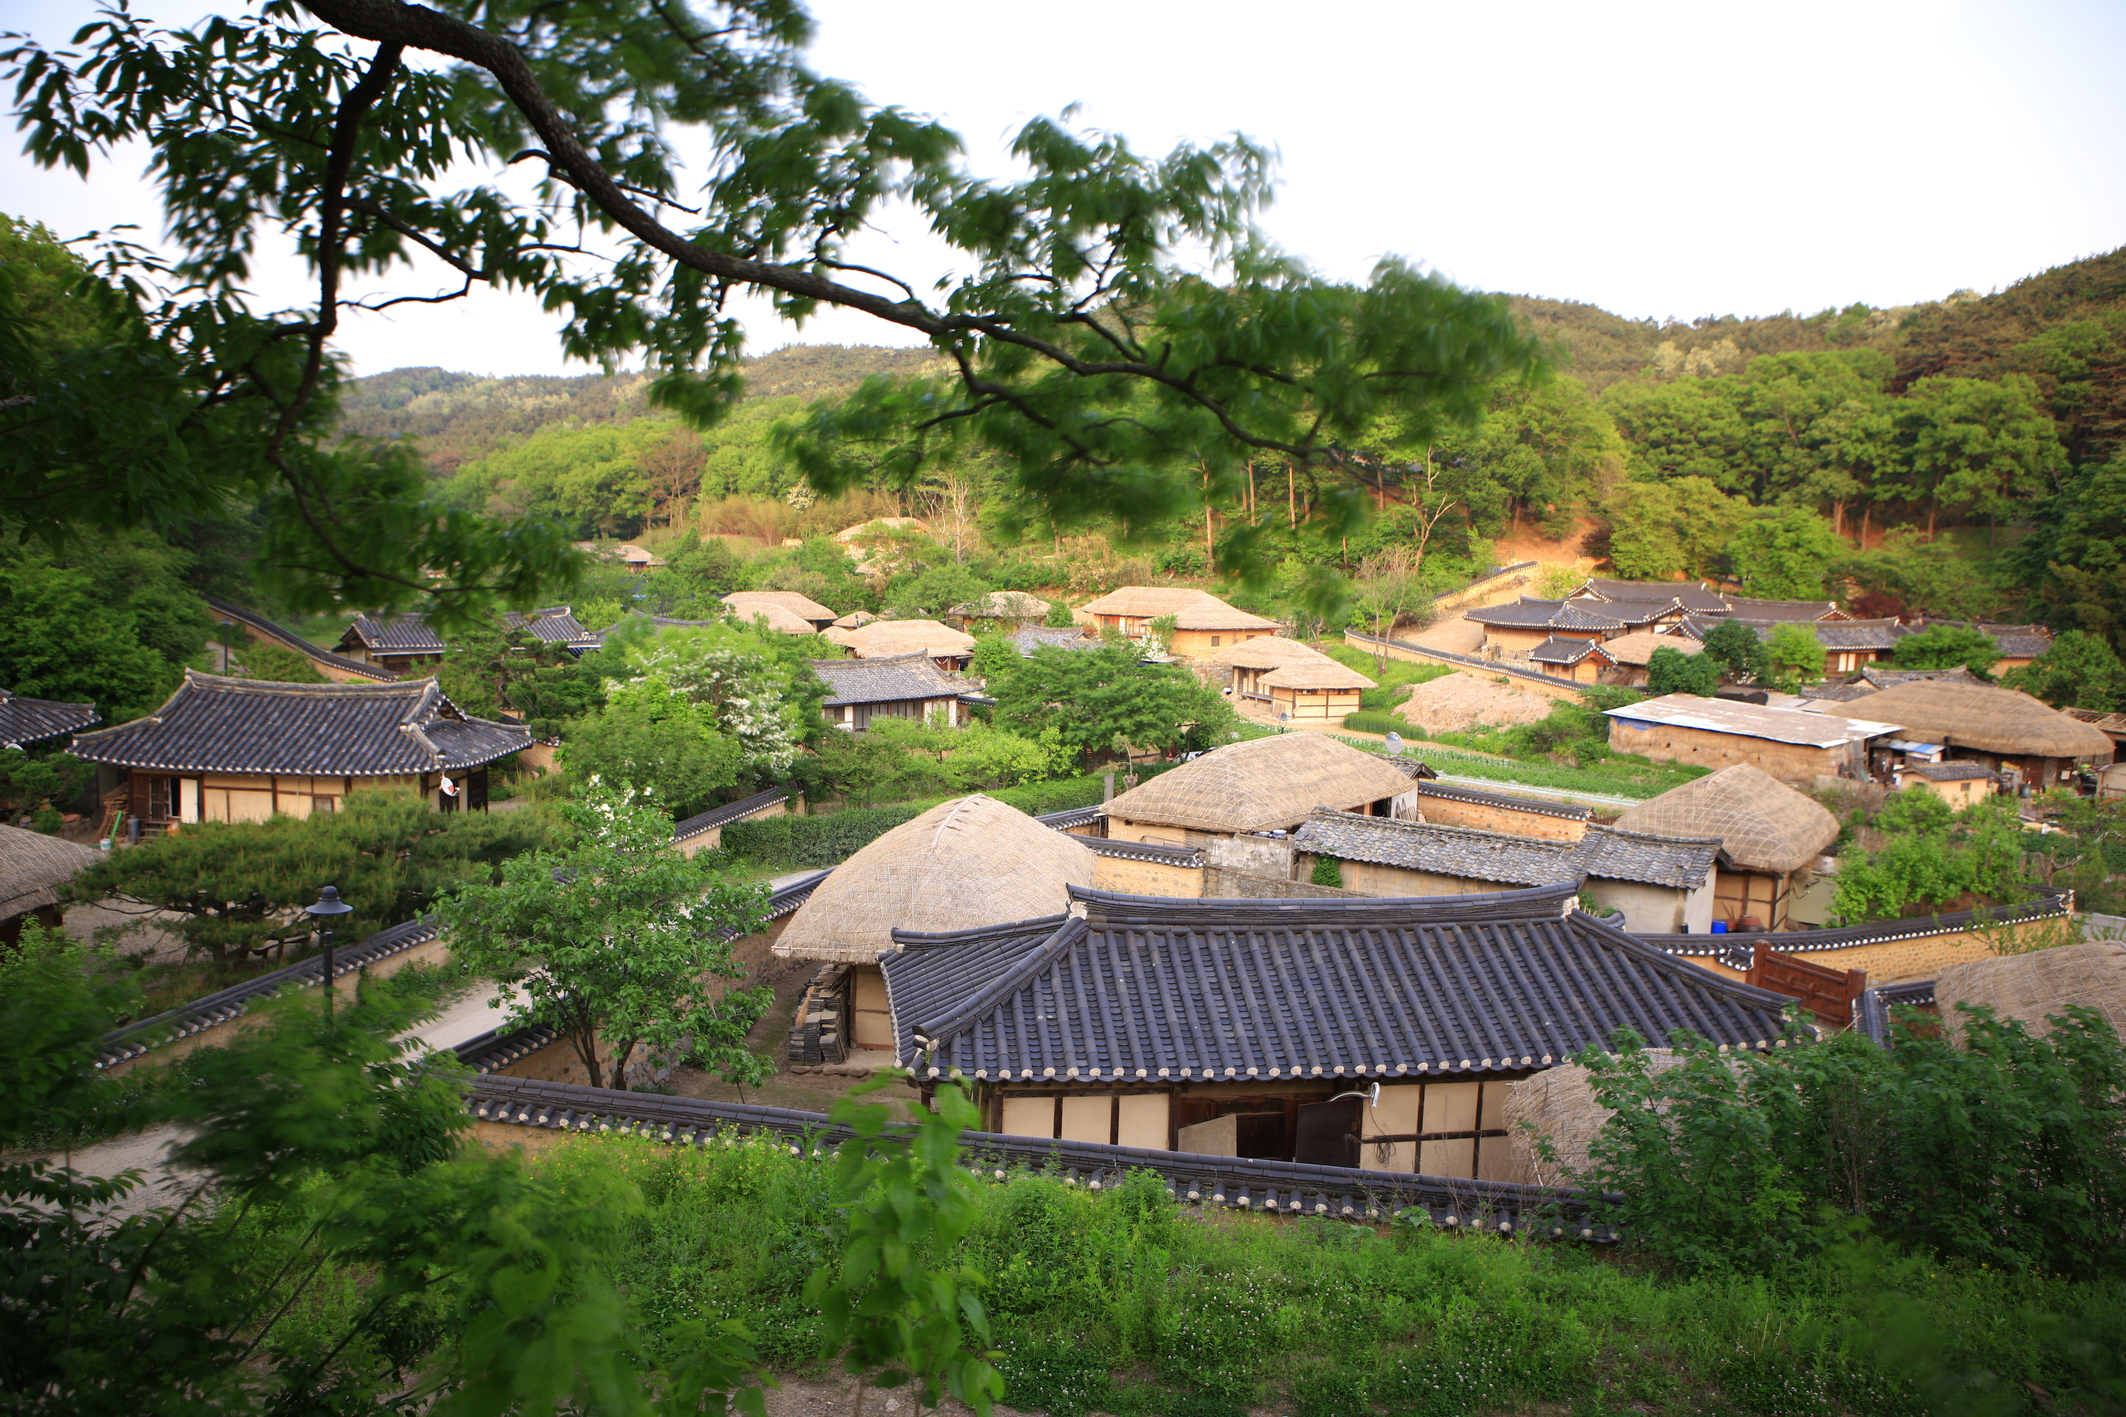 (Oct - Mar) Gyeongju UNESCO World Heritage One Day Tour - Depart from Busan